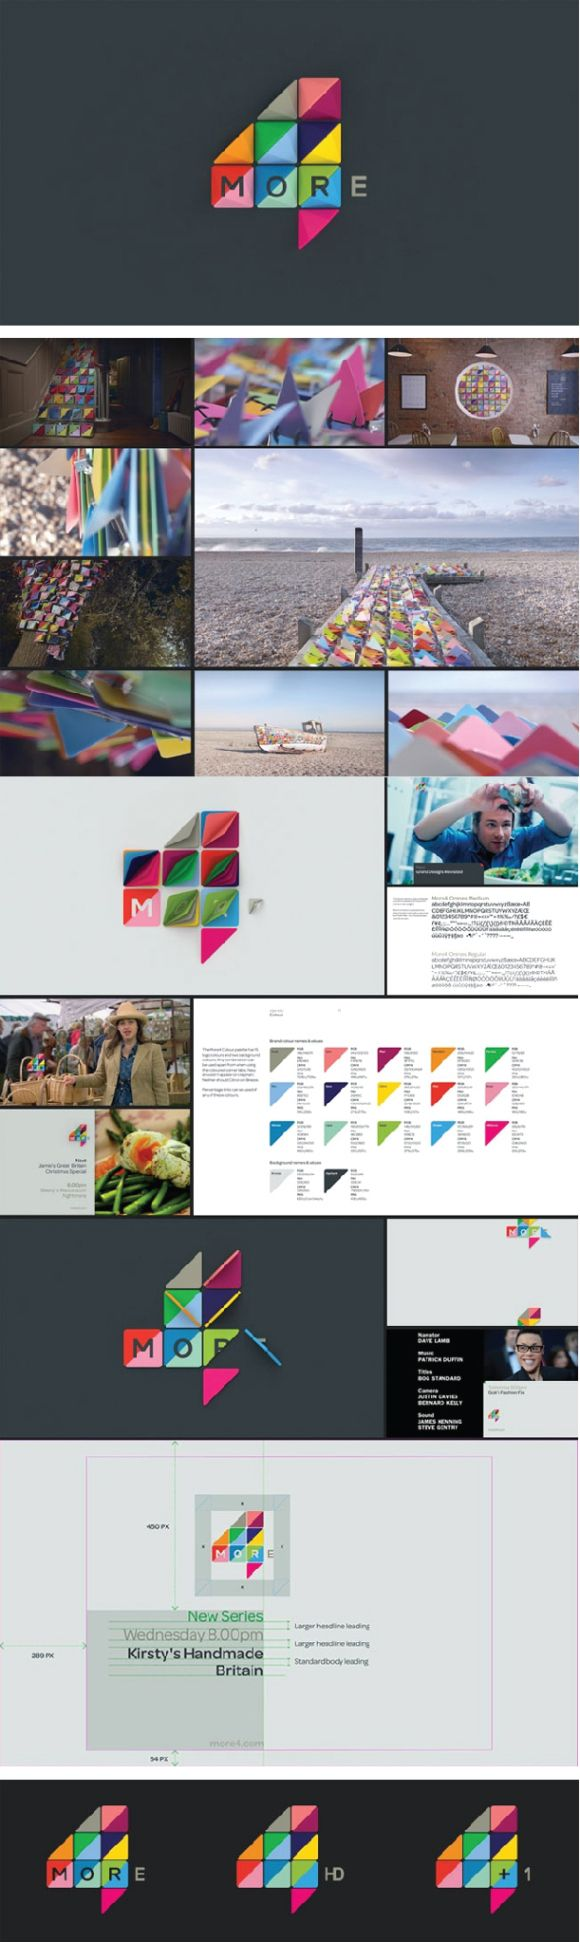 Branding of More4 television channel by London-based ManvsMachine